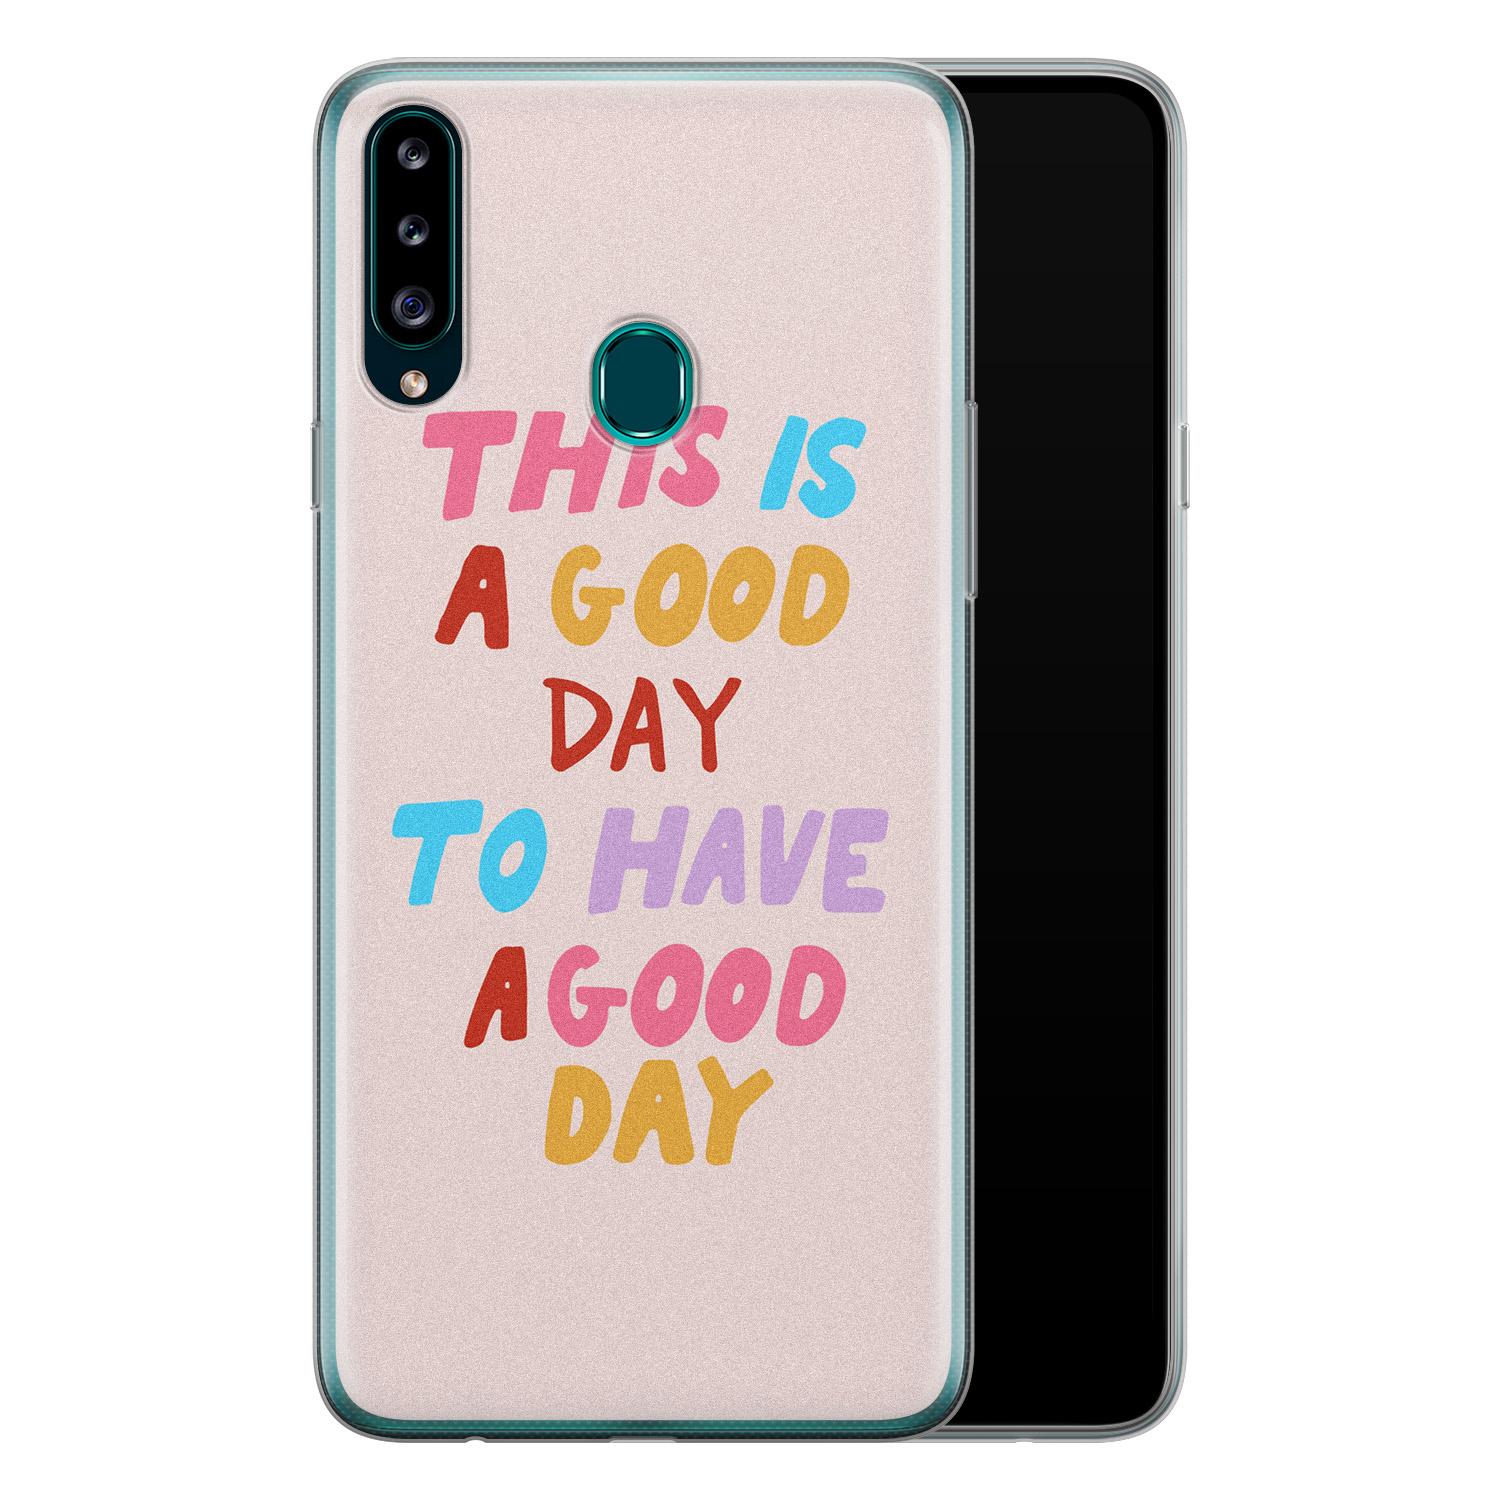 Samsung Galaxy A20s siliconen hoesje - This is a good day